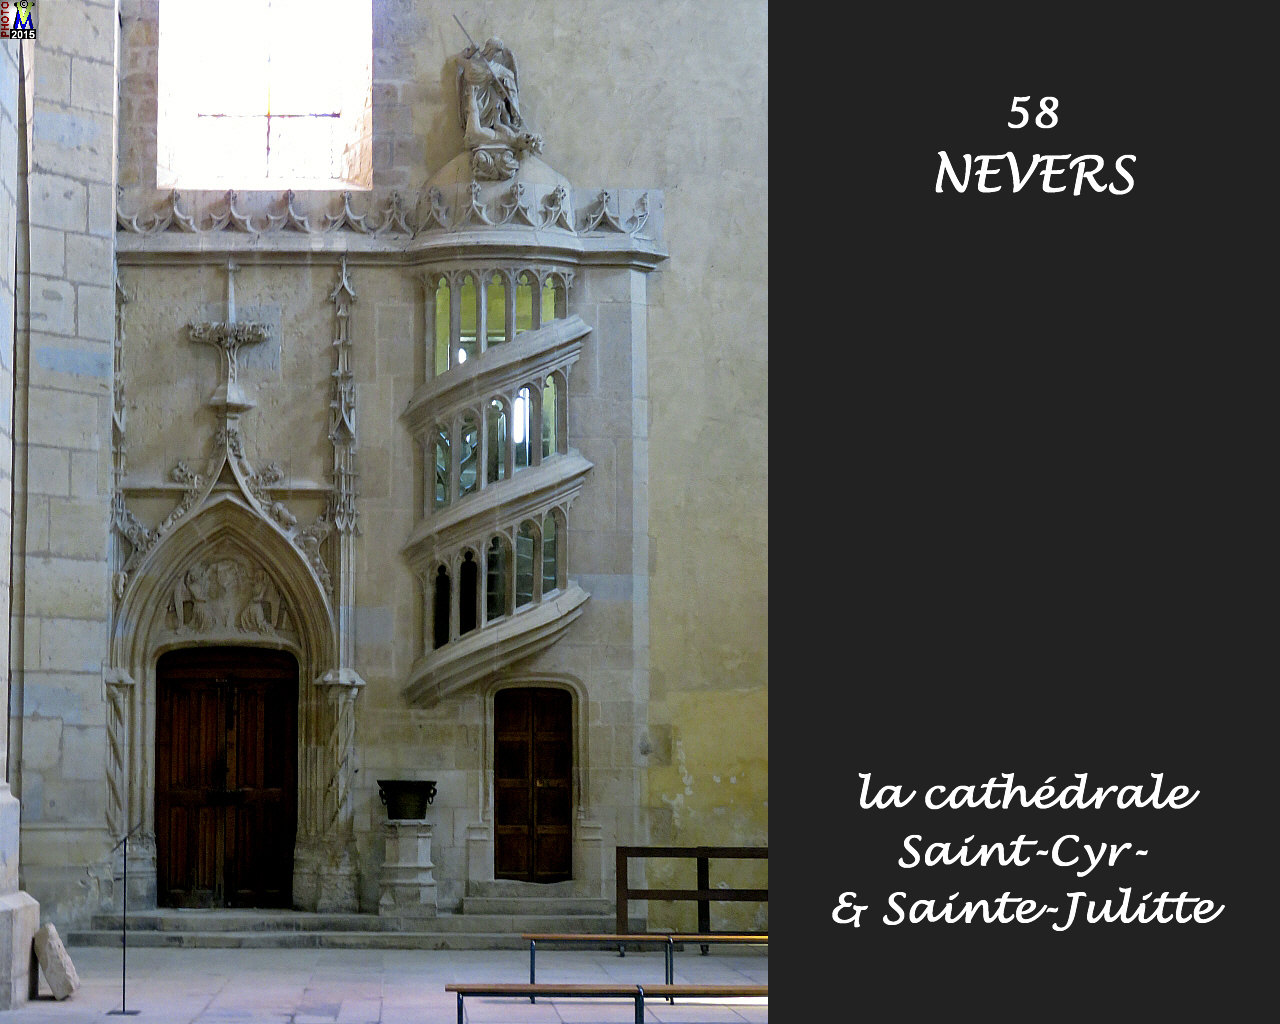 58NEVERS-cathedrale_218.jpg